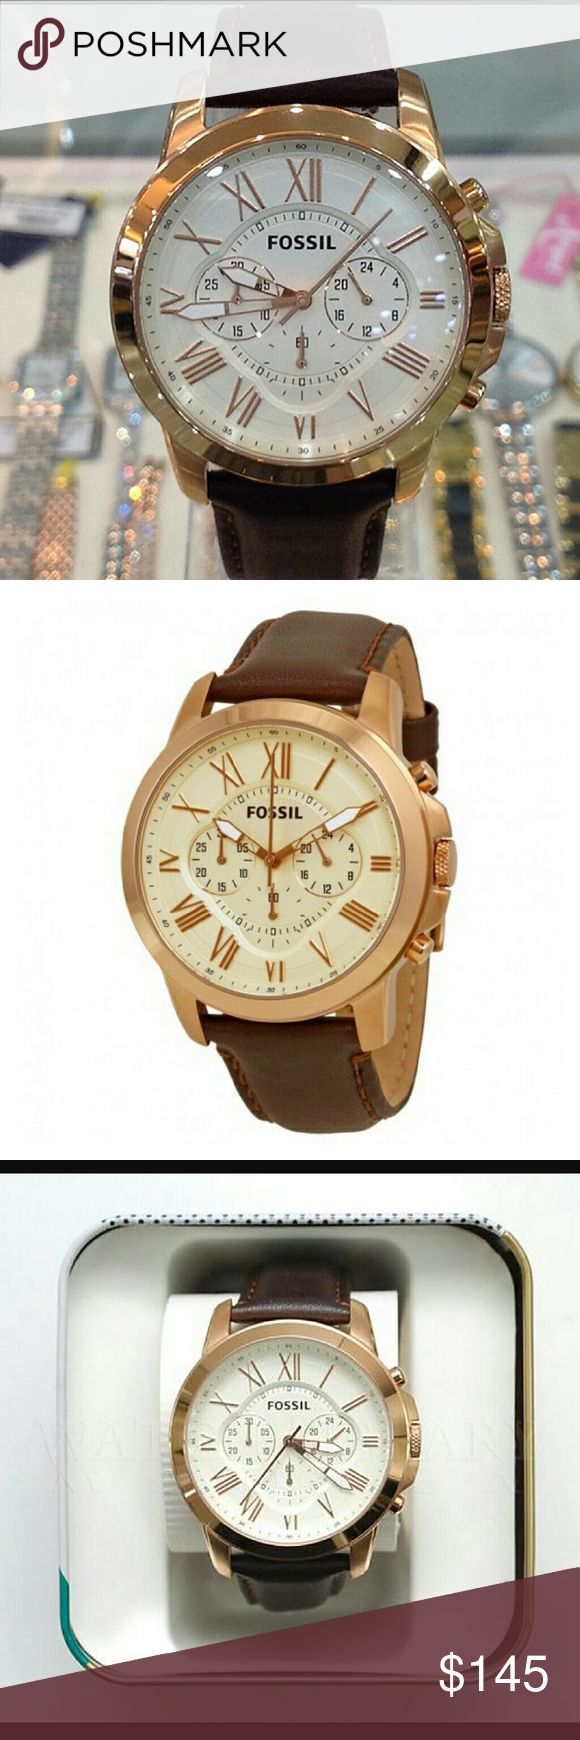 FOSSIL Grant Chronograph Dial Brown Leather watch FOSSIL Grant Chronograph Dial Brown Leather Men's Watch.  Firm price firm price firm price  $ 145.00 . AUTHENTIC WATCH  . AUTHENTIC BOX  . AUTHENTIC MANUAL   SHIPPING  PLEASE ALLOW FEW BUSINESS DAYS FOR ME TO SHIPPED IT OFF.I HAVE TO GET IT FROM MY WAREHOUSE.    THANK YOU FOR YOUR UNDERSTANDING. Fossil  Accessories Watches